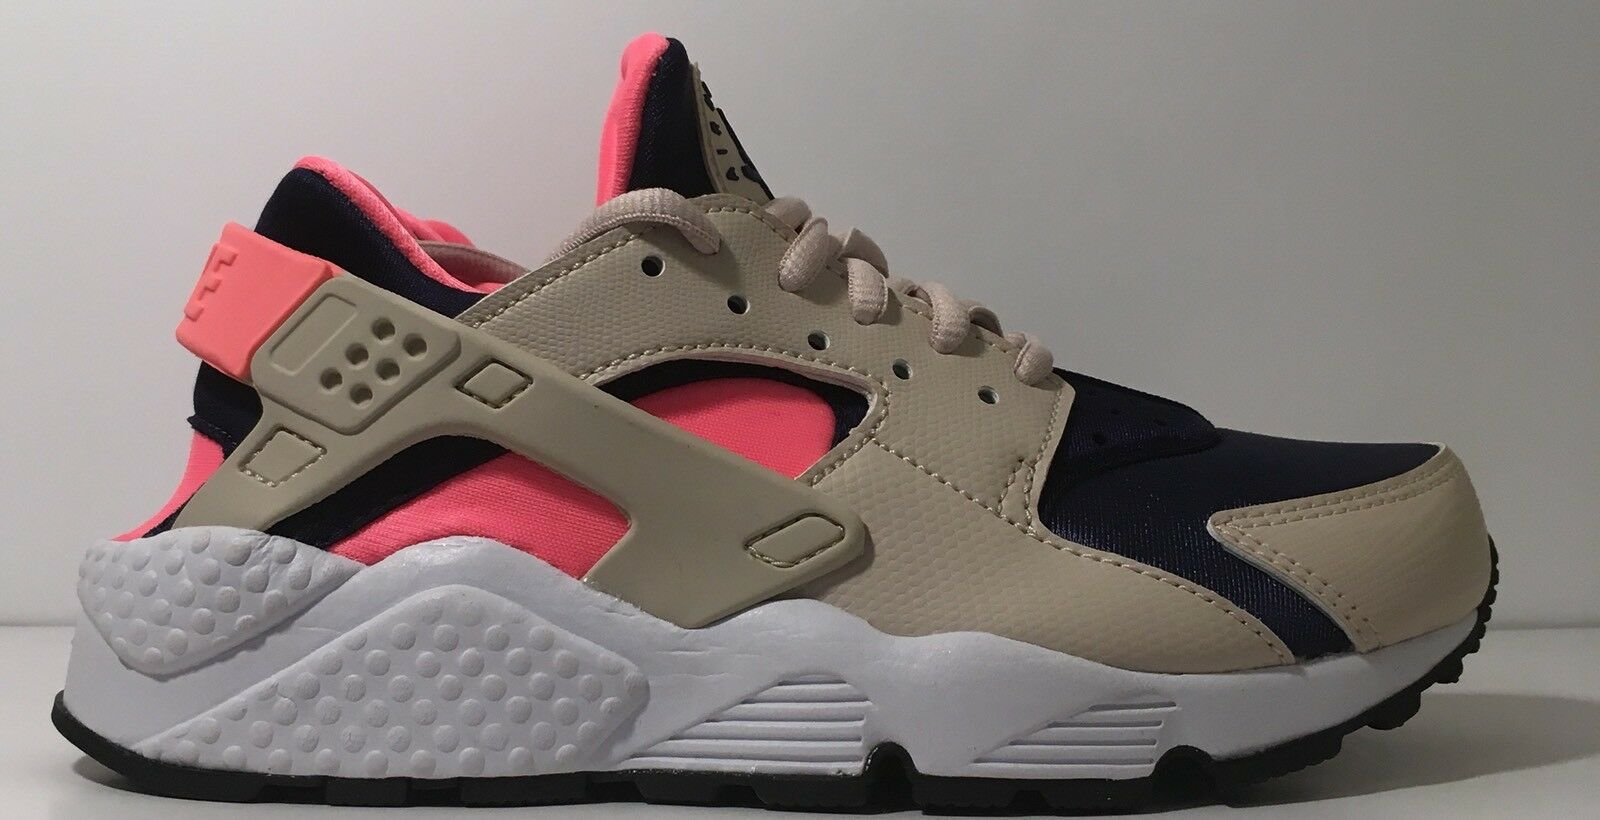 SZ.5 Nike Womens Air Huarache Run 634835-111 Oatmeal Binarybluee LavaGlow